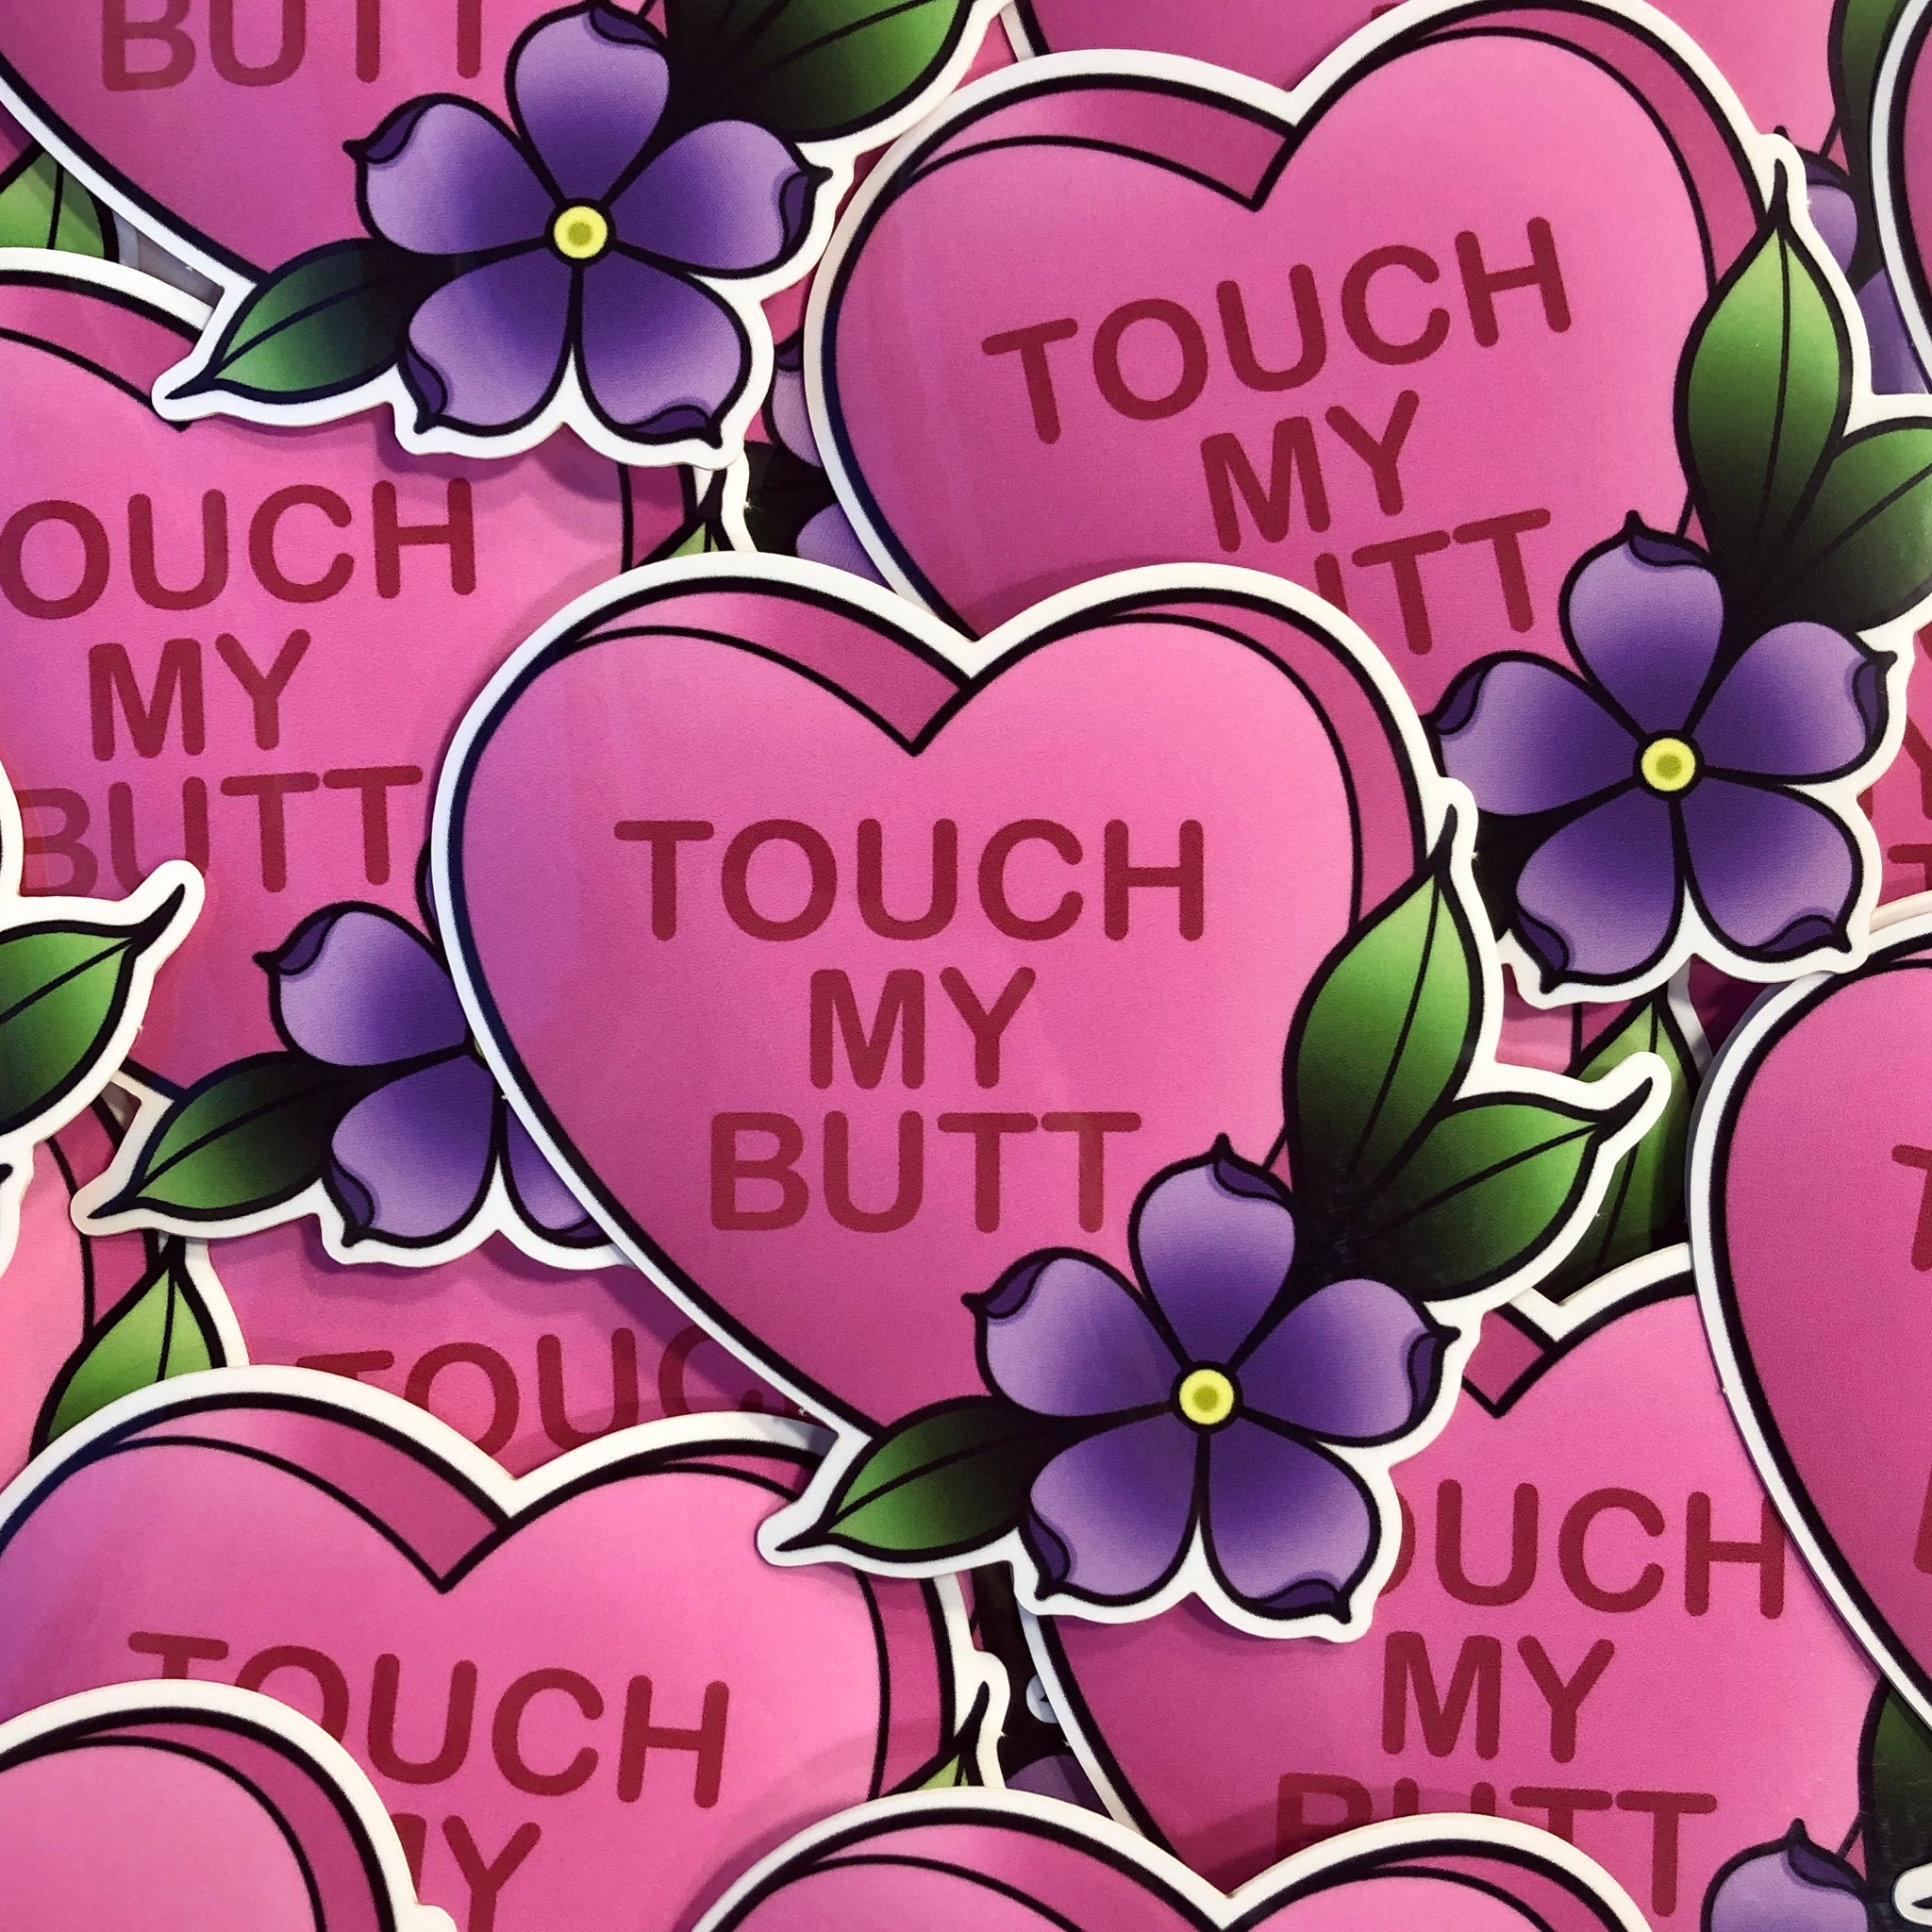 Touch My Butt - Sticker